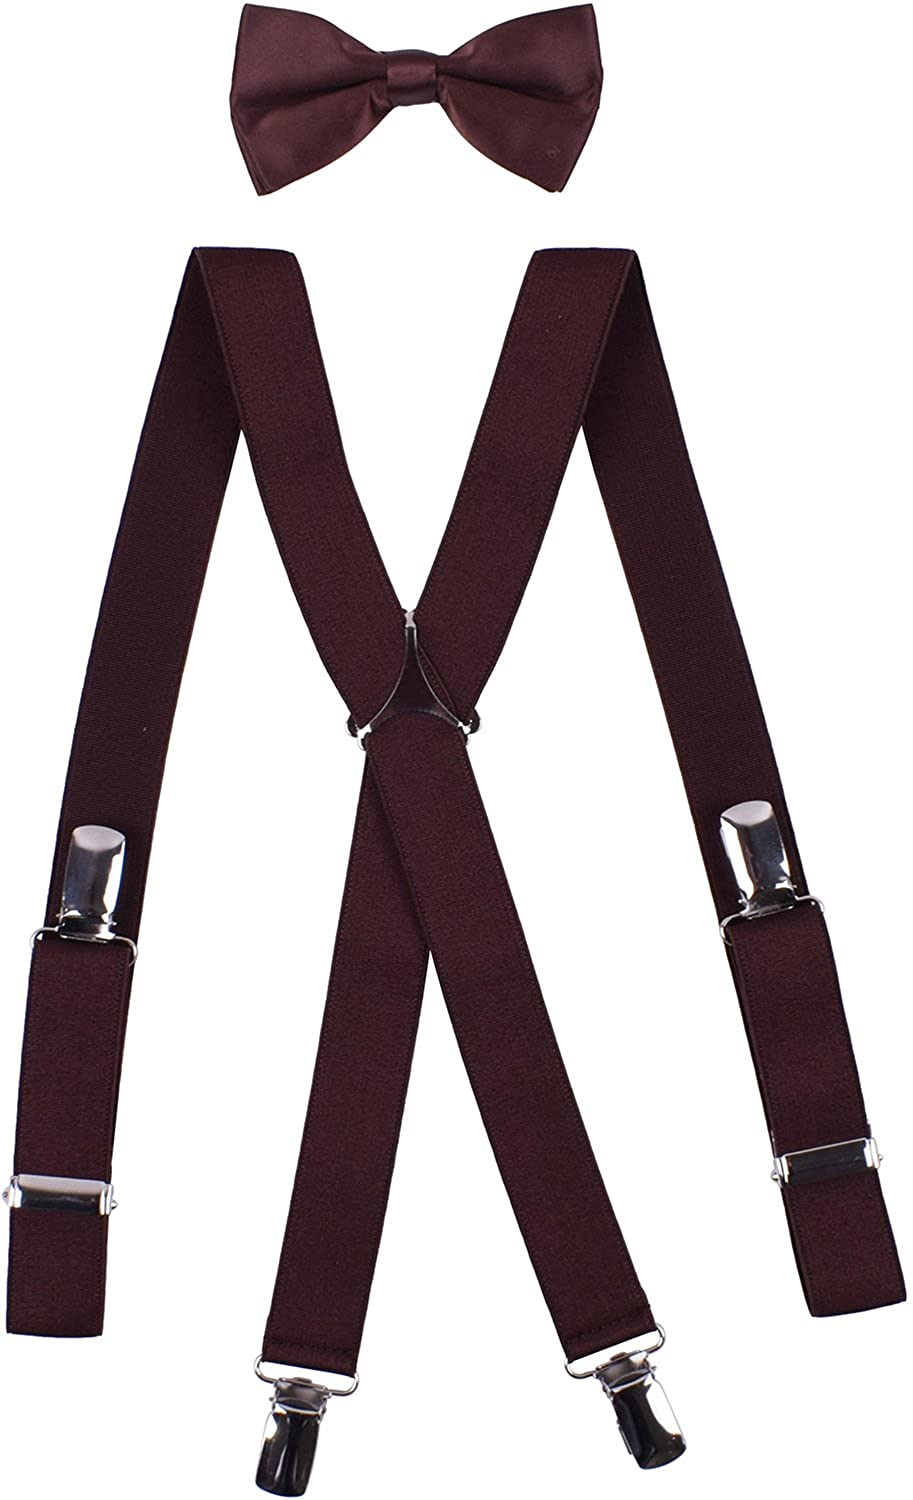 a642443d3d2f Material - Suspenders: Microfiber, Rubber, Leather, Stainless Steel. Bow tie:  Polyester, Satin. Size - 22